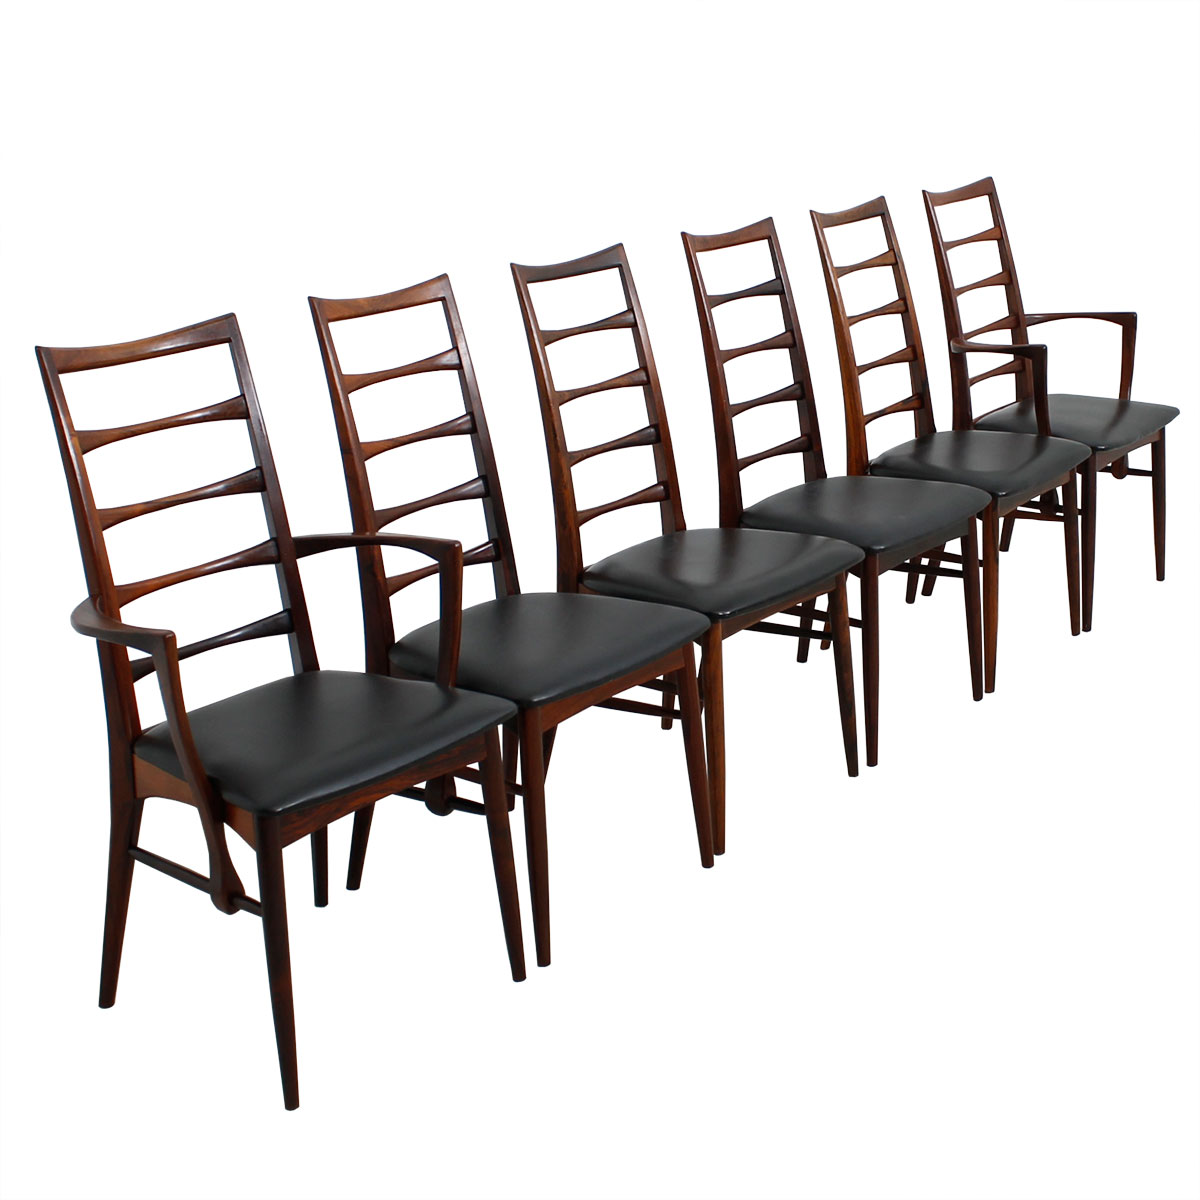 Set of 4 – 12+ Danish Rosewood Dining Chairs